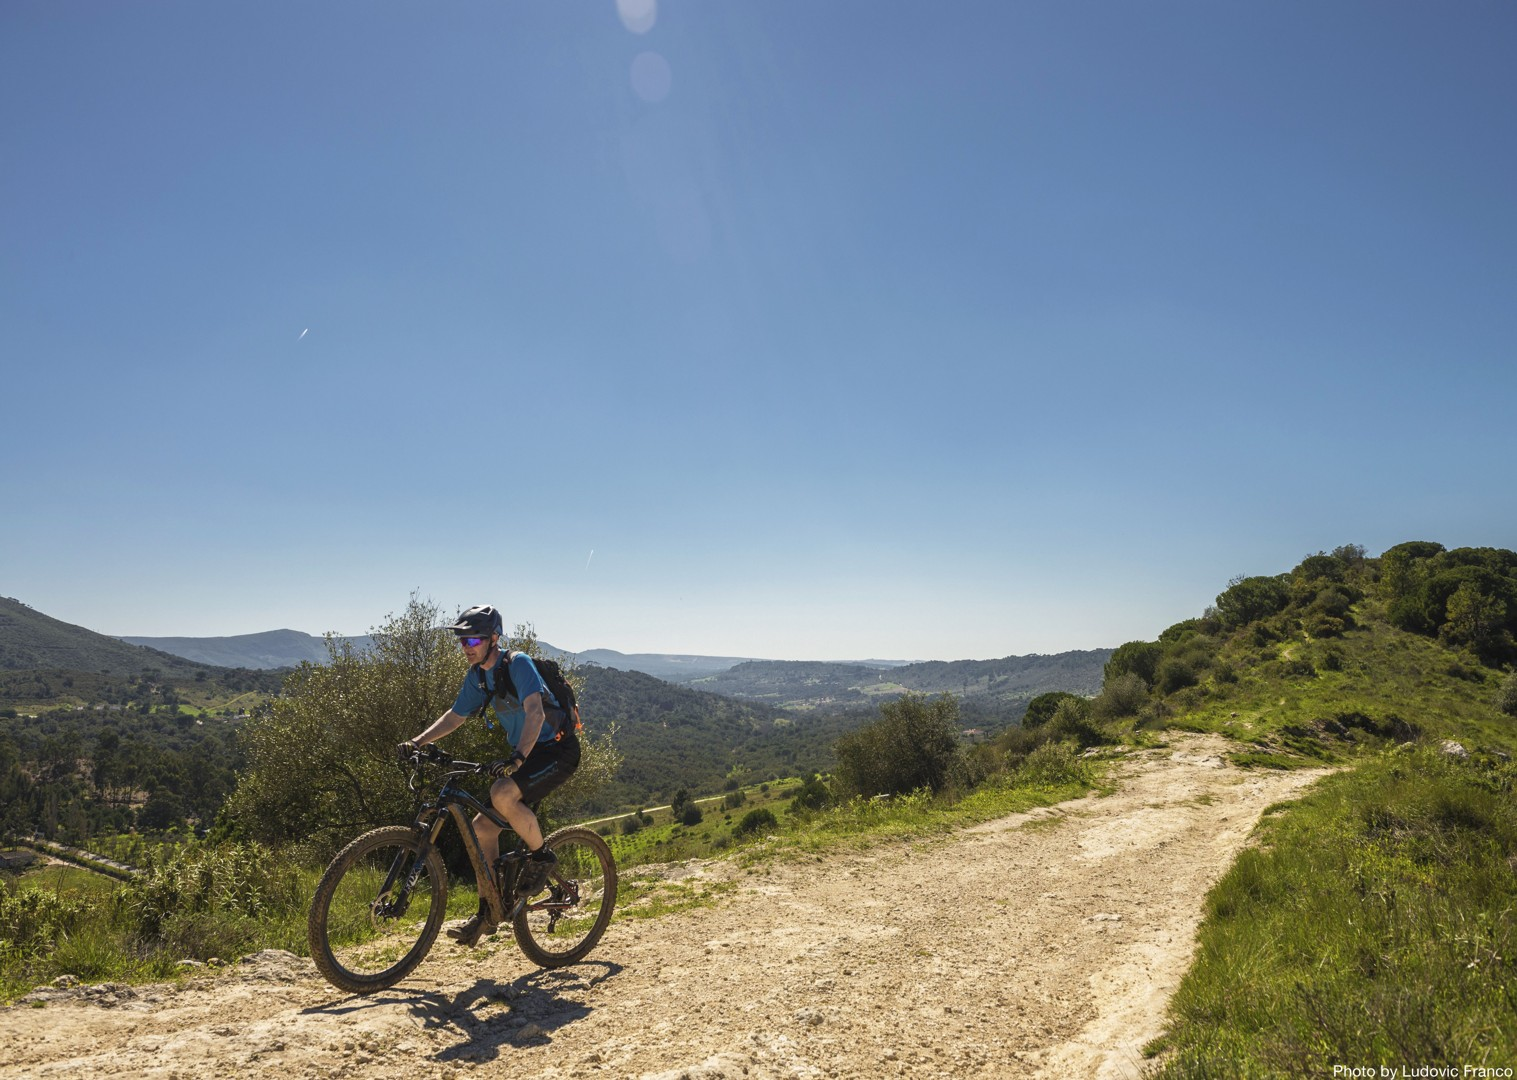 quiet-routes-hilltop-cycling-holiday-atlantic-trails-portugal.jpg - Portugal - Atlantic Trails - Mountain Biking